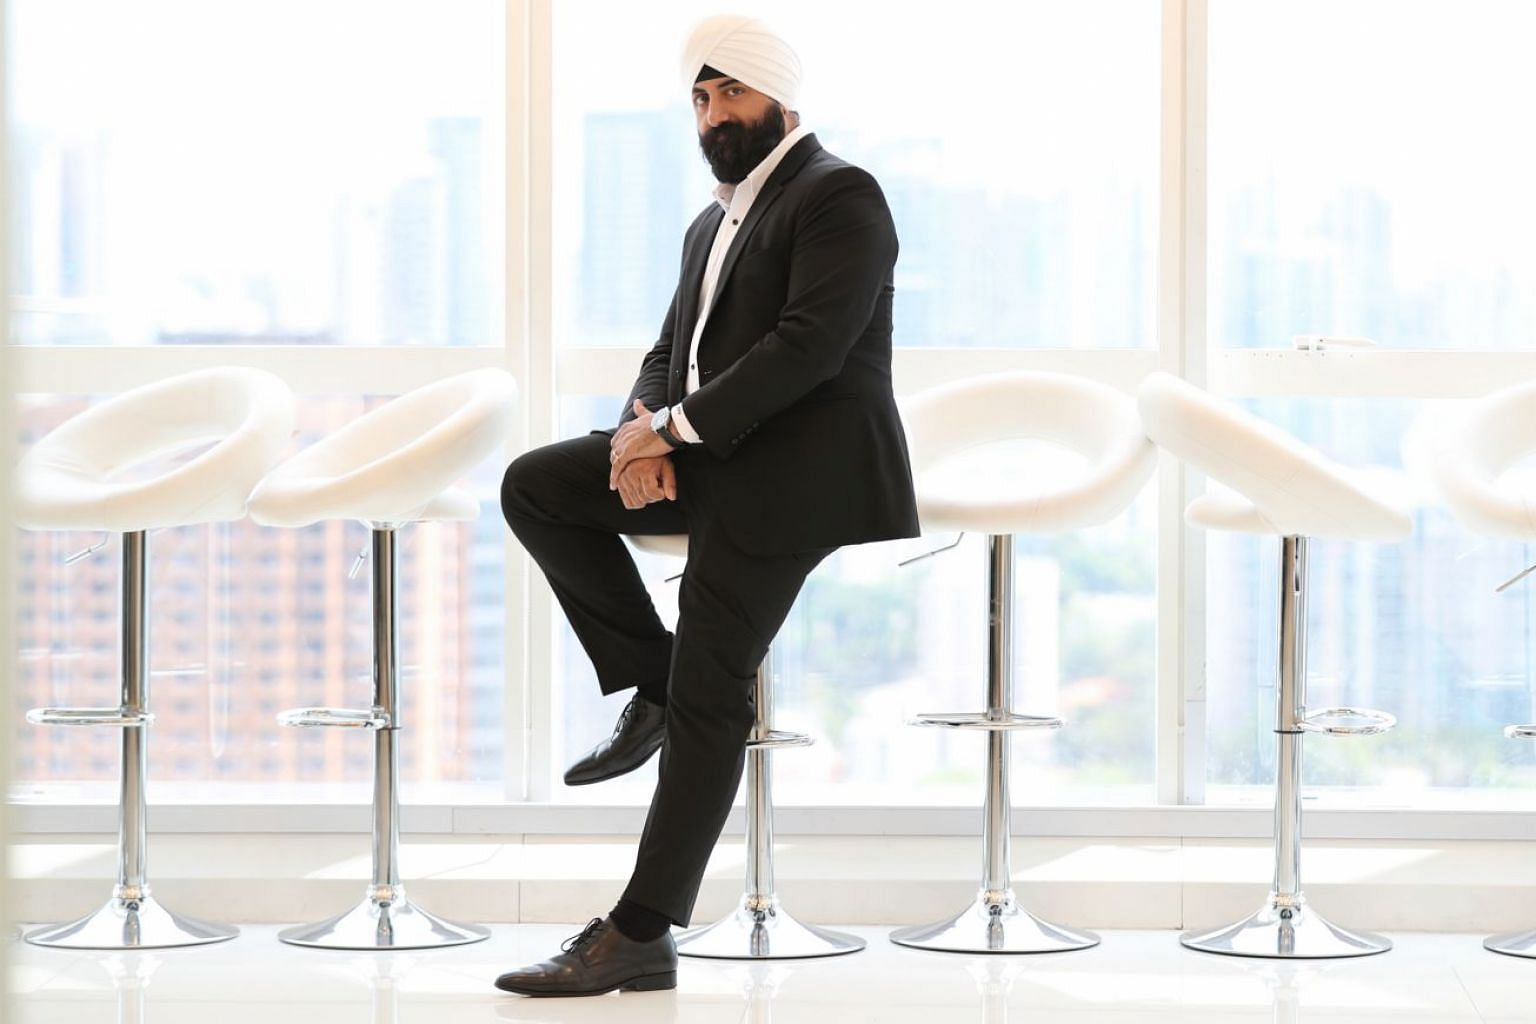 A former ITE graduate, Mr Kawal Pal Singh is today a partner in a local law firm.